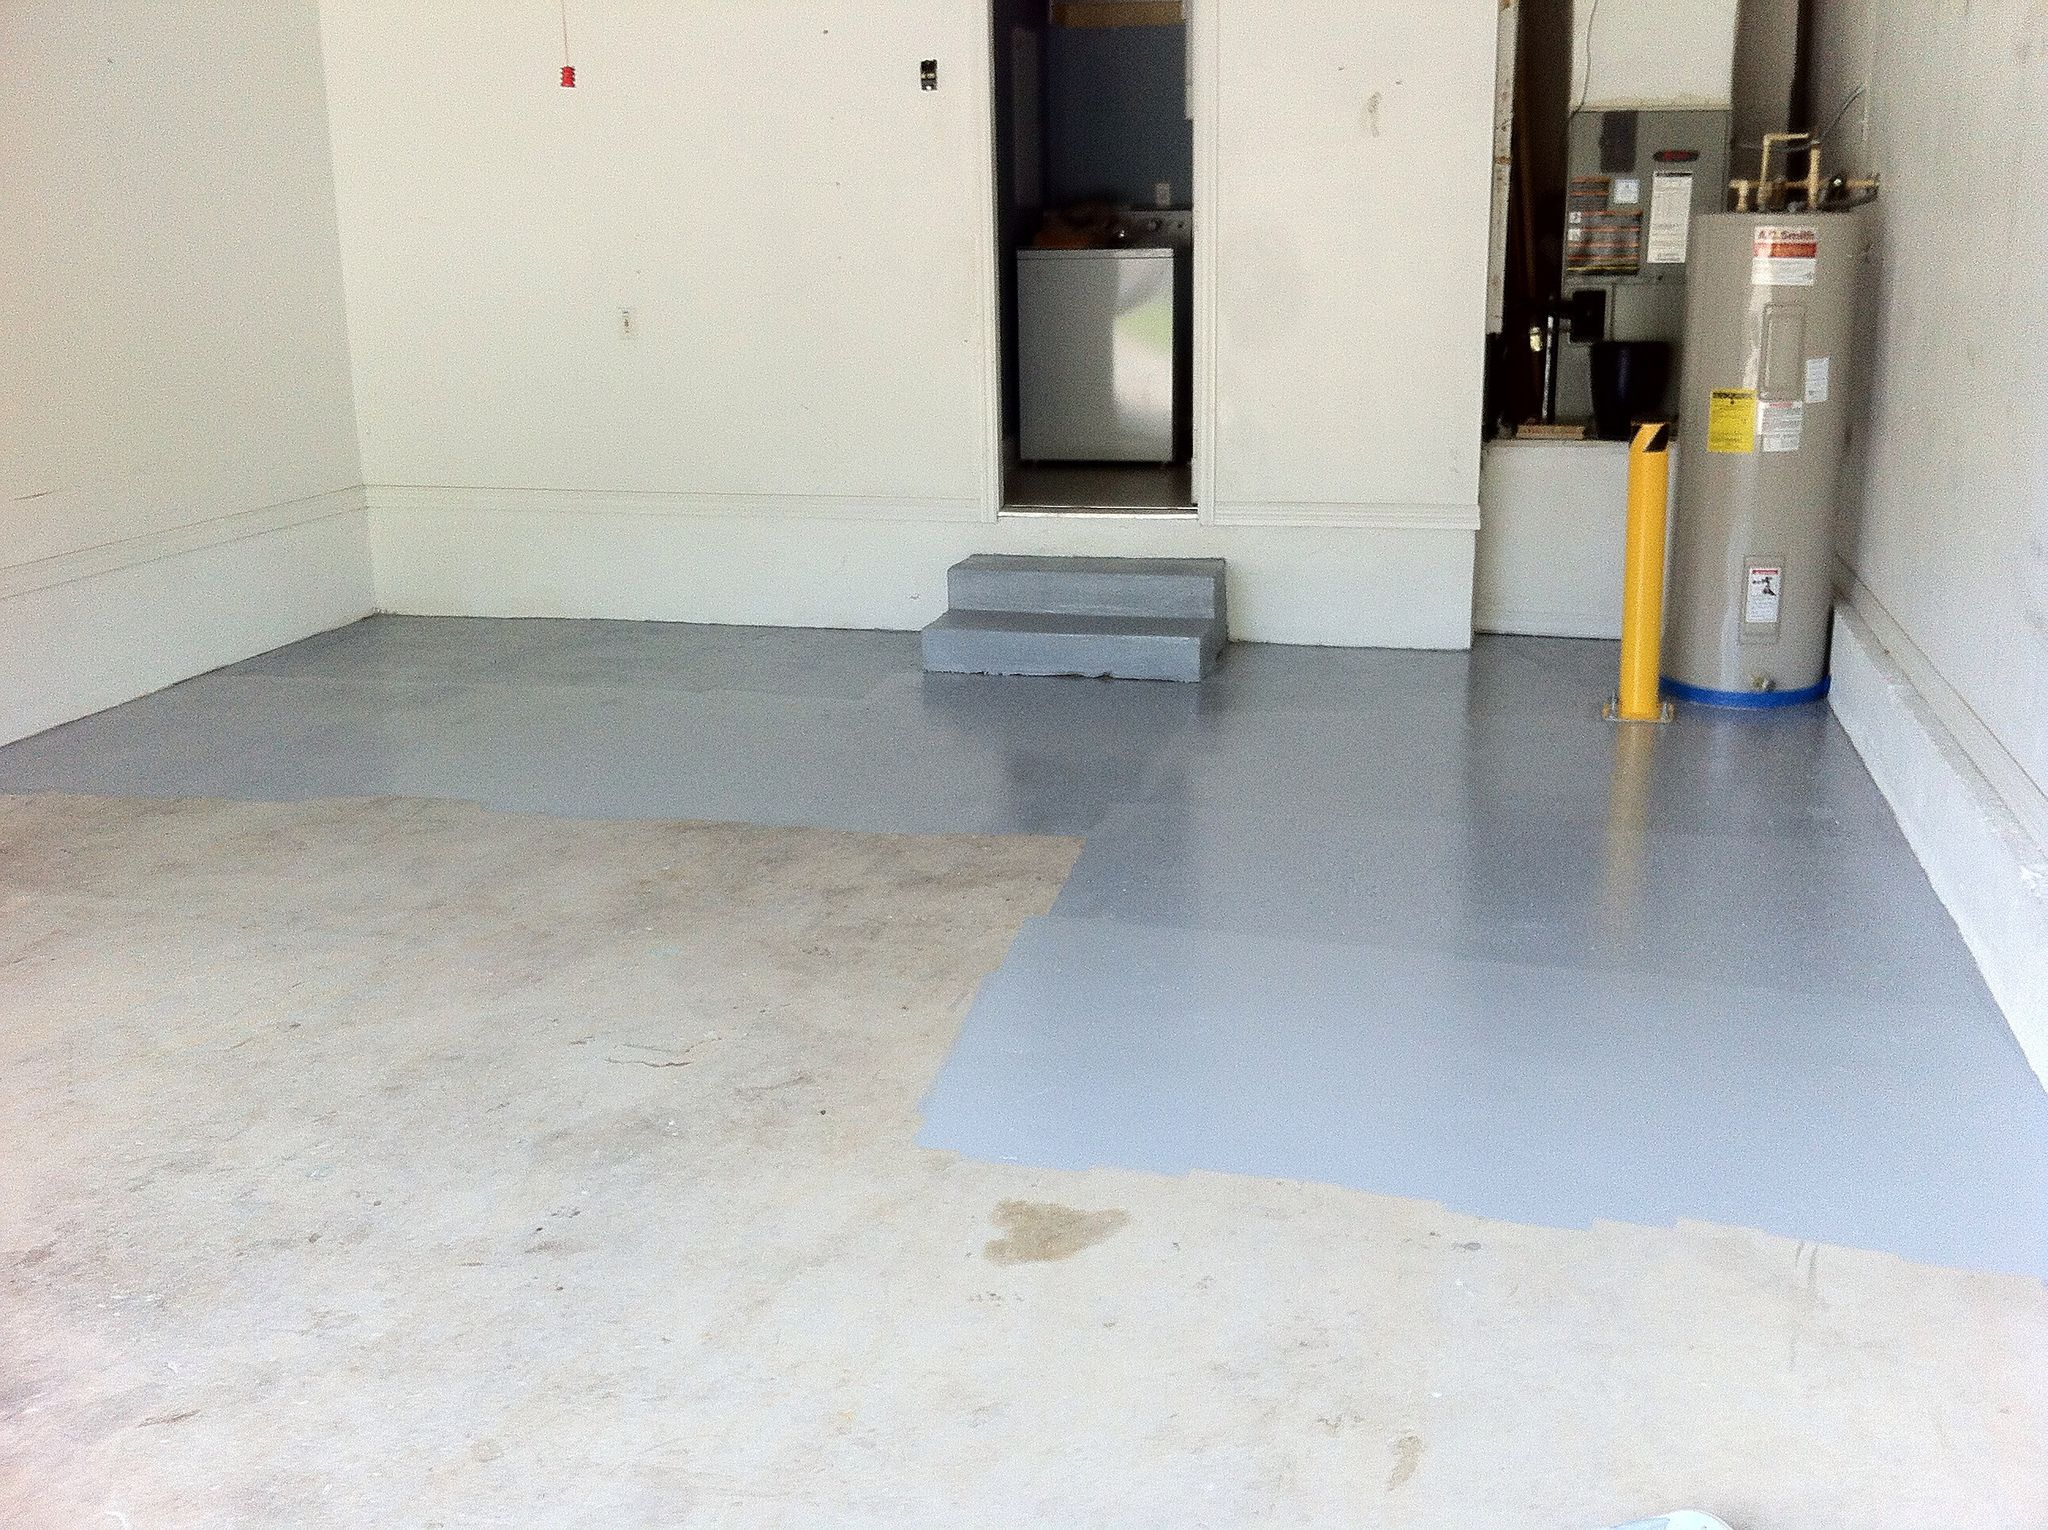 diy coating vinyl vinylchip flooring garage chip epoxy floor